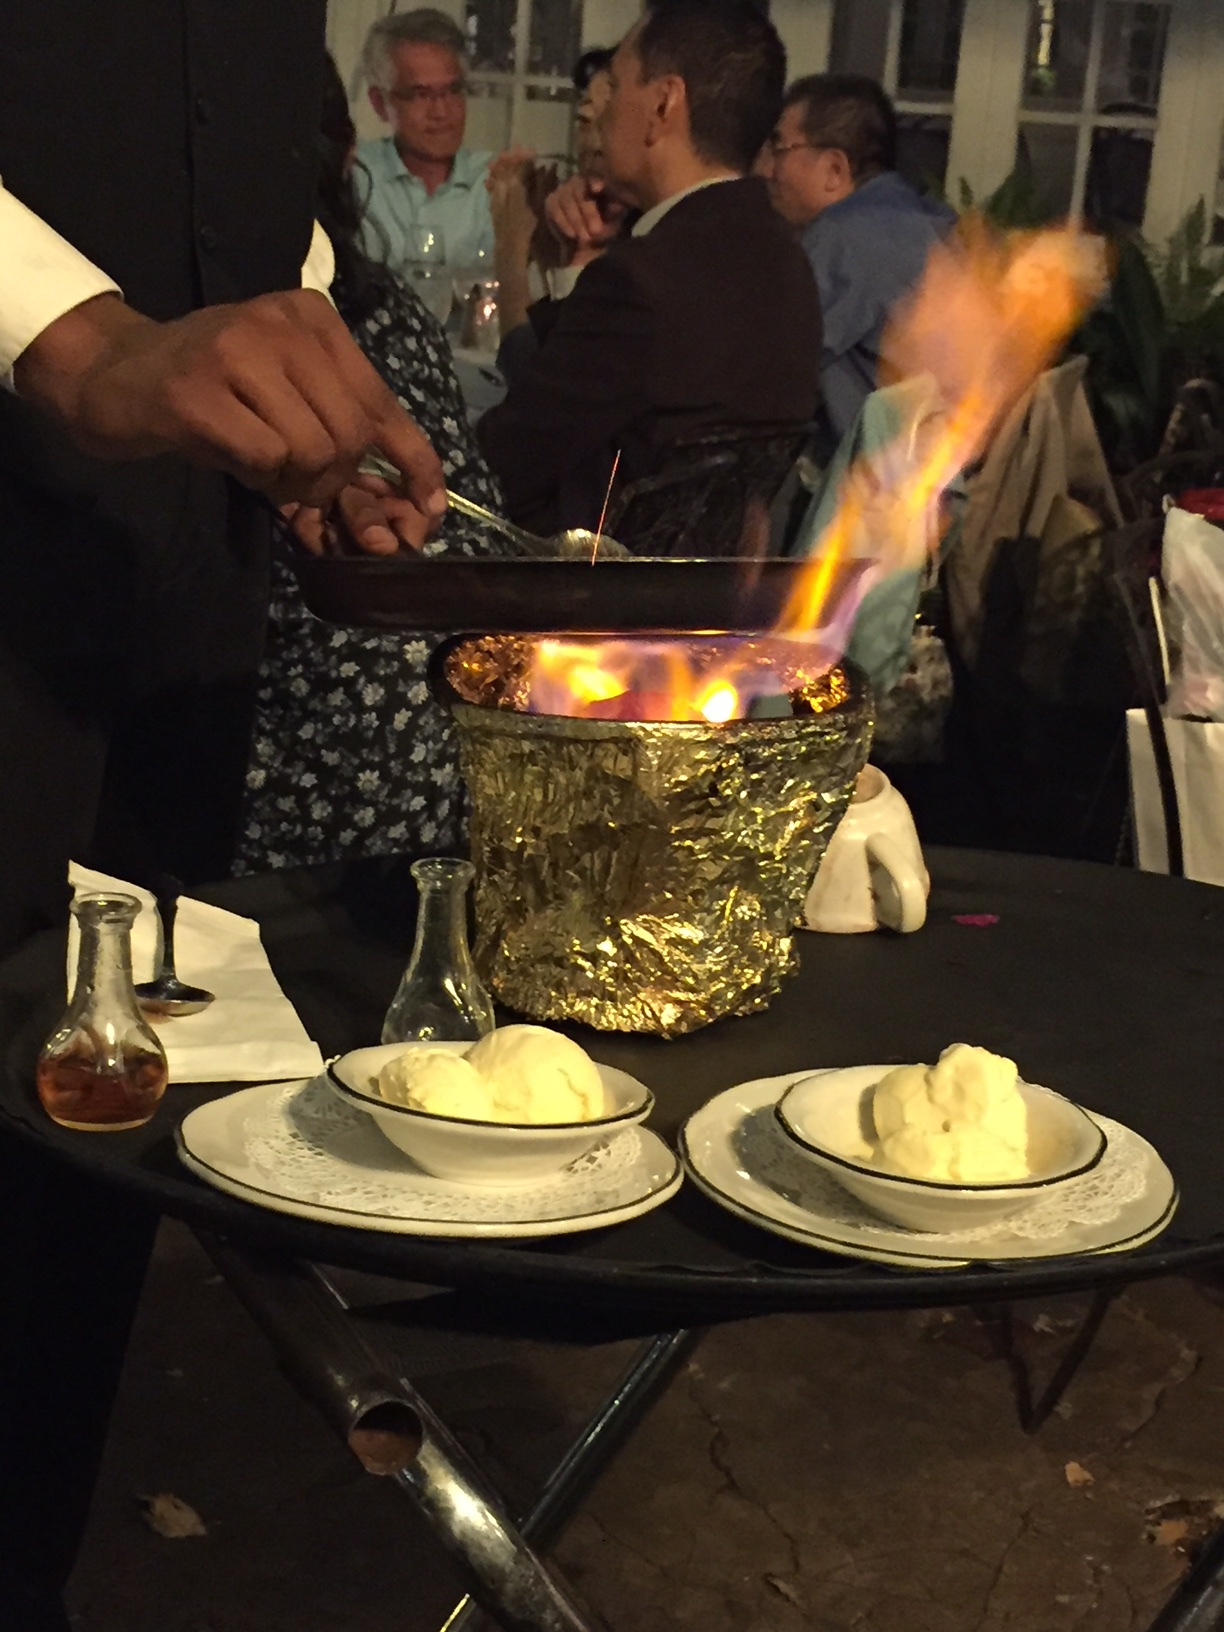 My friend asked me if it were between having to make tableside guacamole or Bananas Foster, which would I choose. Avocados don't tend to set people on fire on most days, and I'm clumsy.